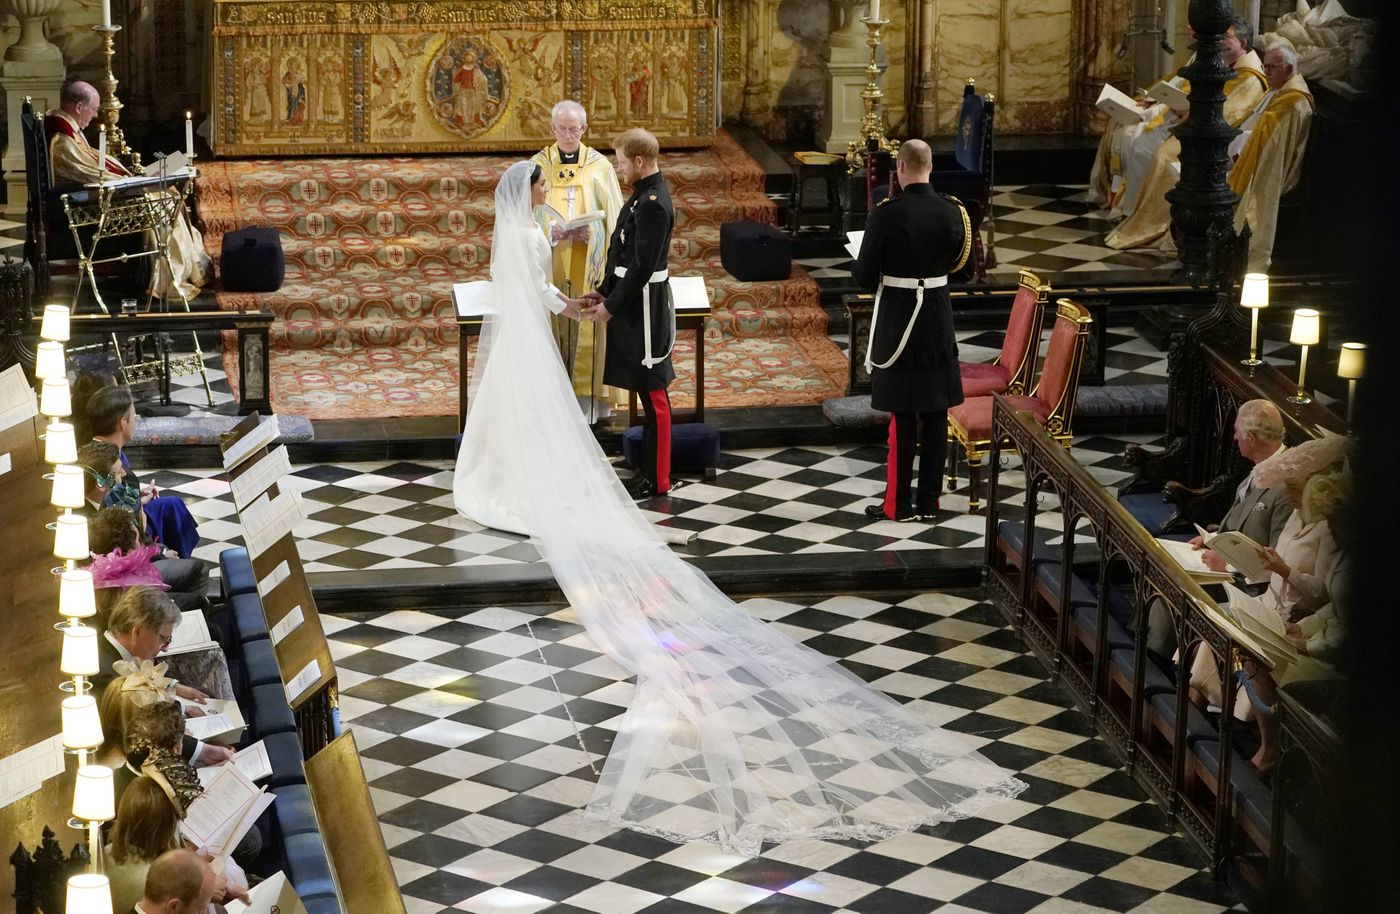 Royal Wedding Meghan Markle Wears Givenchy Dress To The Ceremony Vox